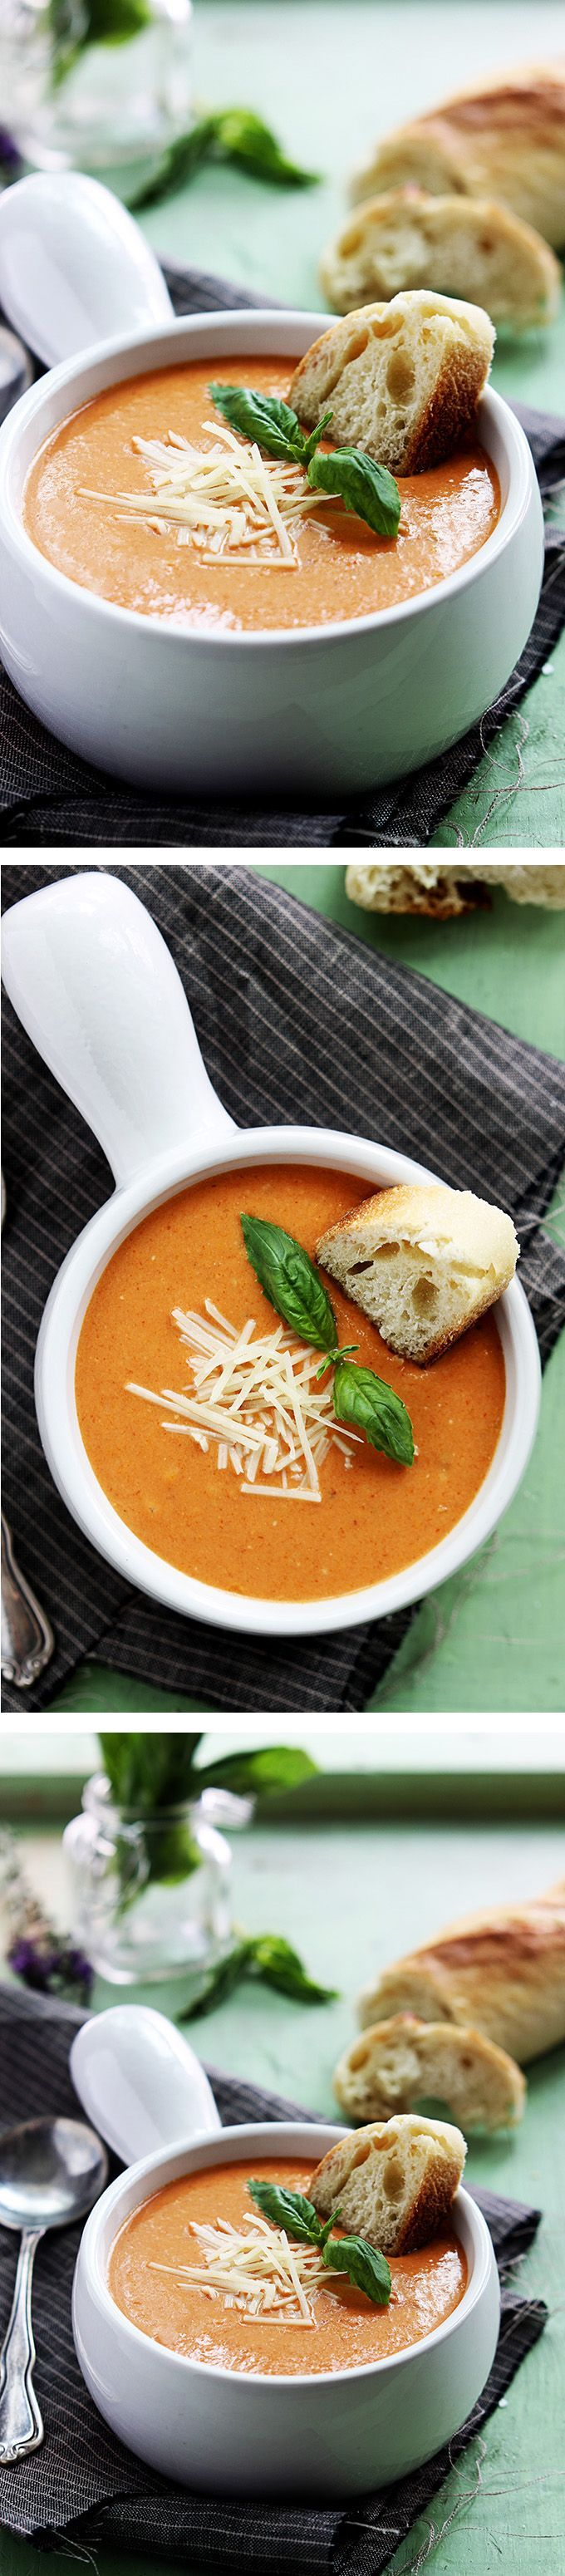 Creamy and rich tomato basil and cheesy parmesan soup made in the crockpot! This recipe gets rave reviews because it is AMAZING!